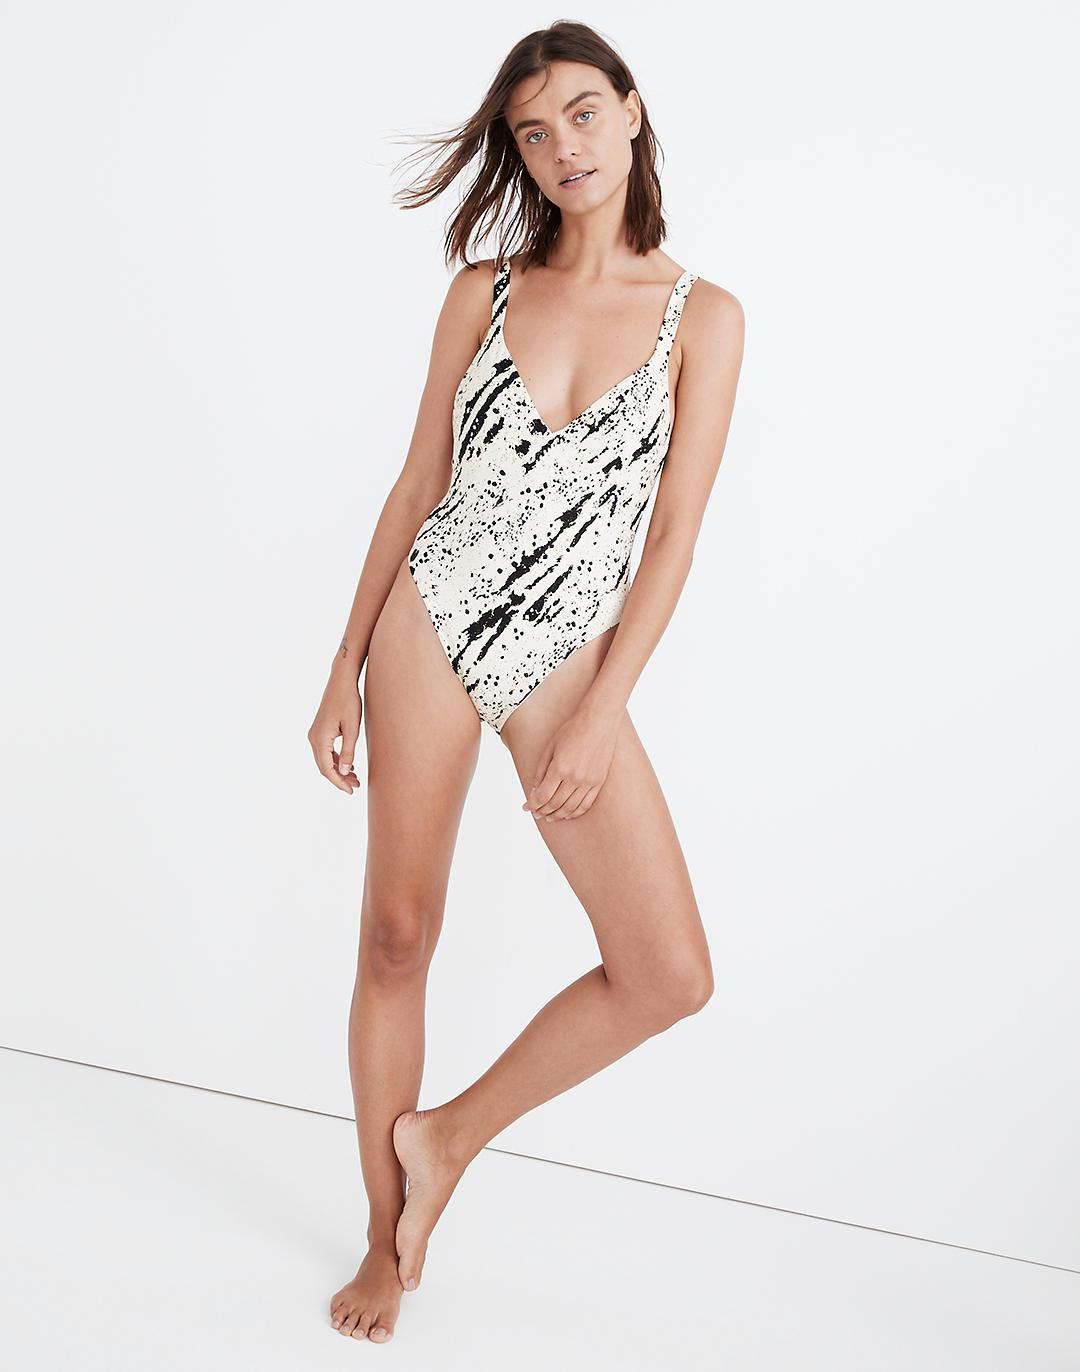 Madewell Second Wave Maillot One-Piece Swimsuit in Speckled Tiger